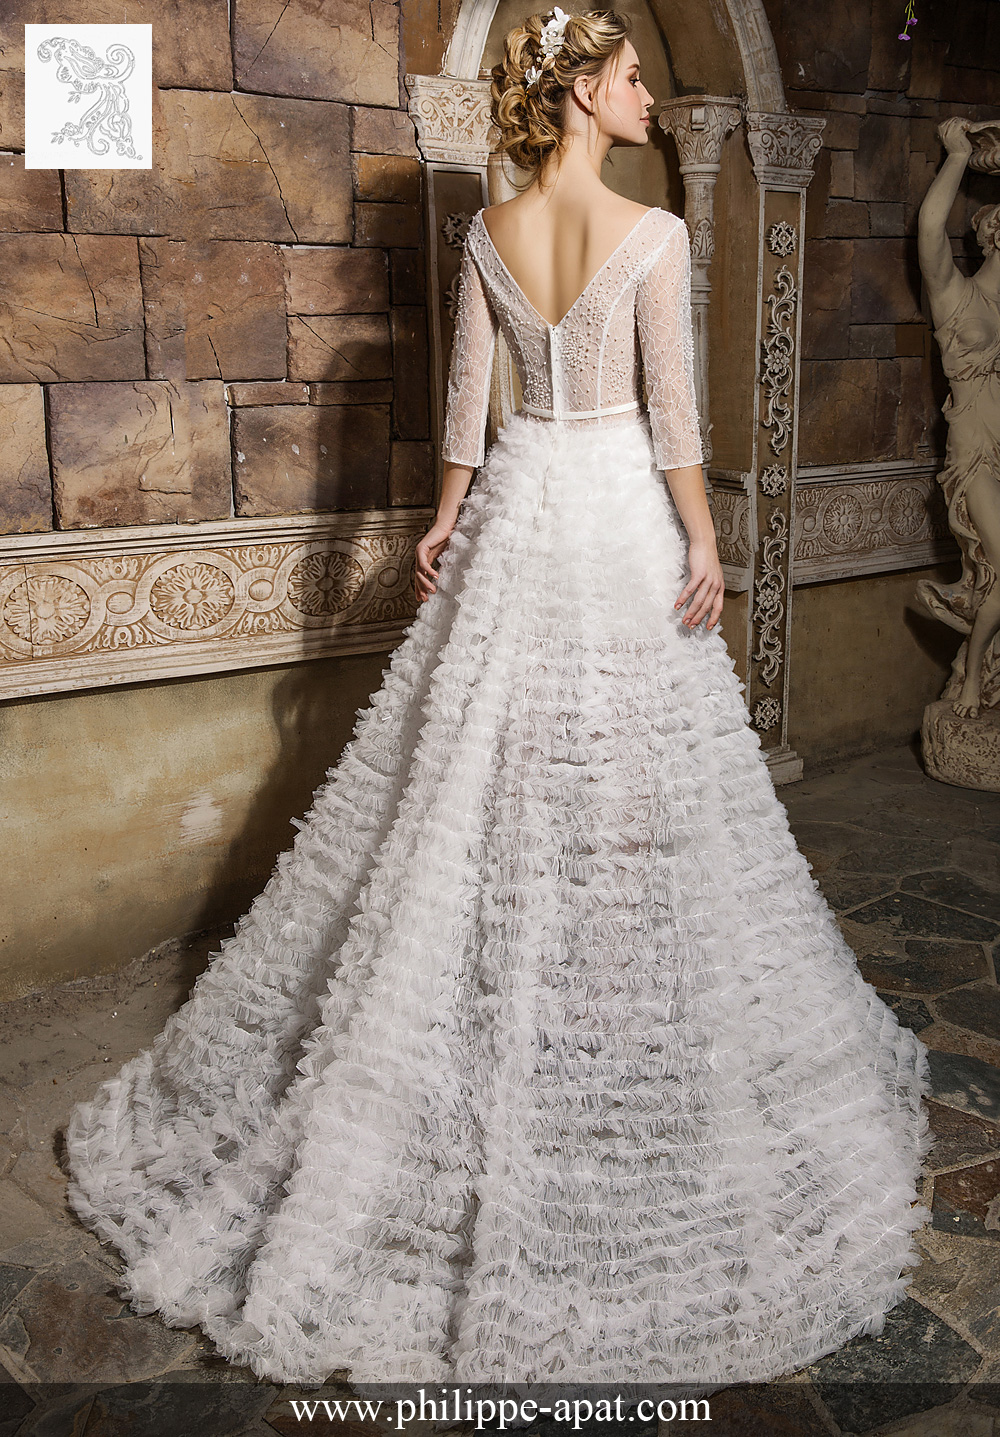 Robe blanche 2017 transparent bustier 2018 Philippe Apat